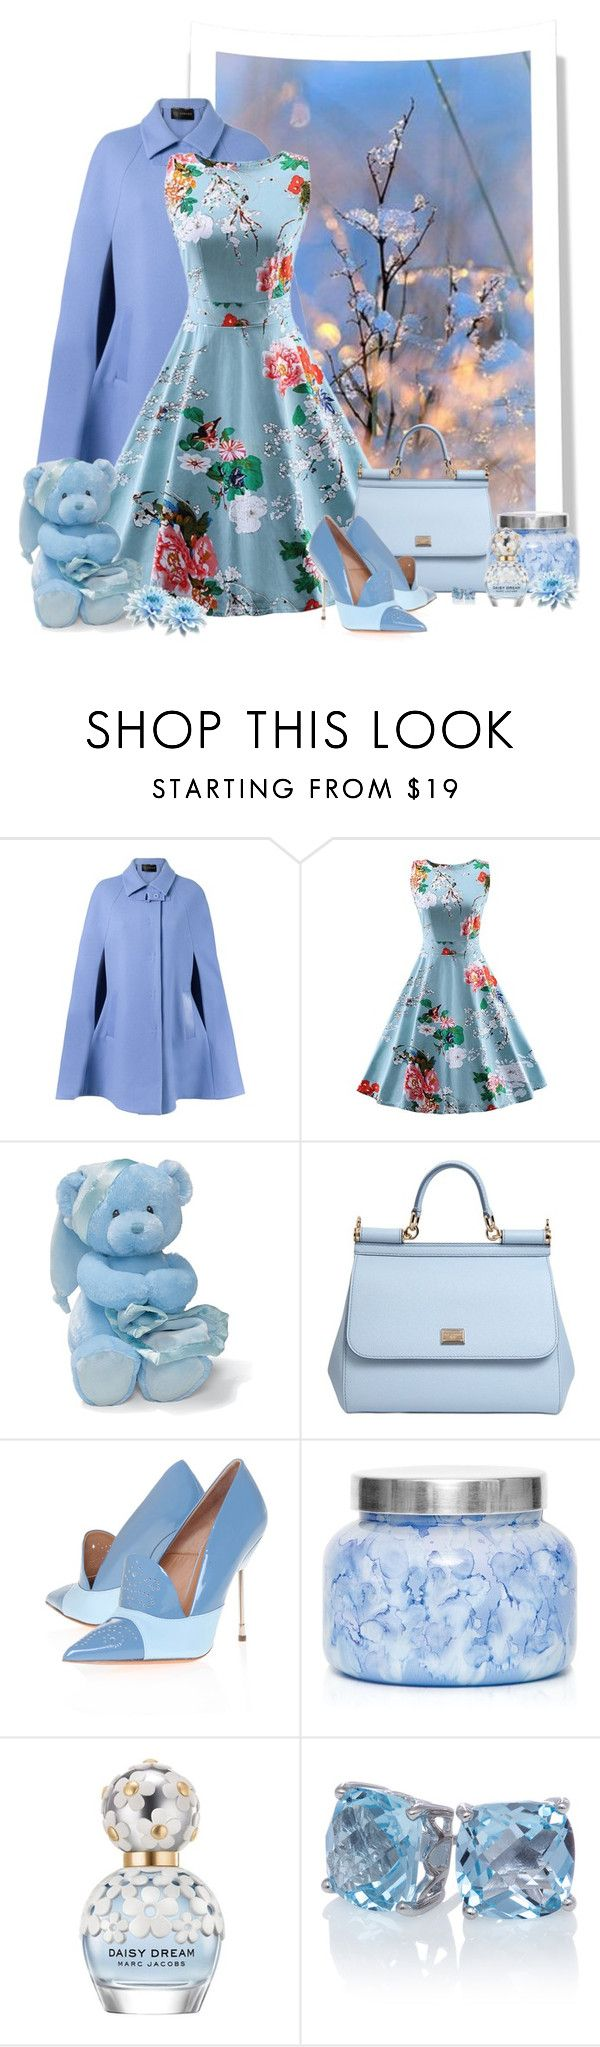 """Vestido floral  de US $ 19"" by sil-engler ❤ liked on Polyvore featuring Gund, Dolce&Gabbana, Kurt Geiger, Capri Blue and Marc Jacobs"